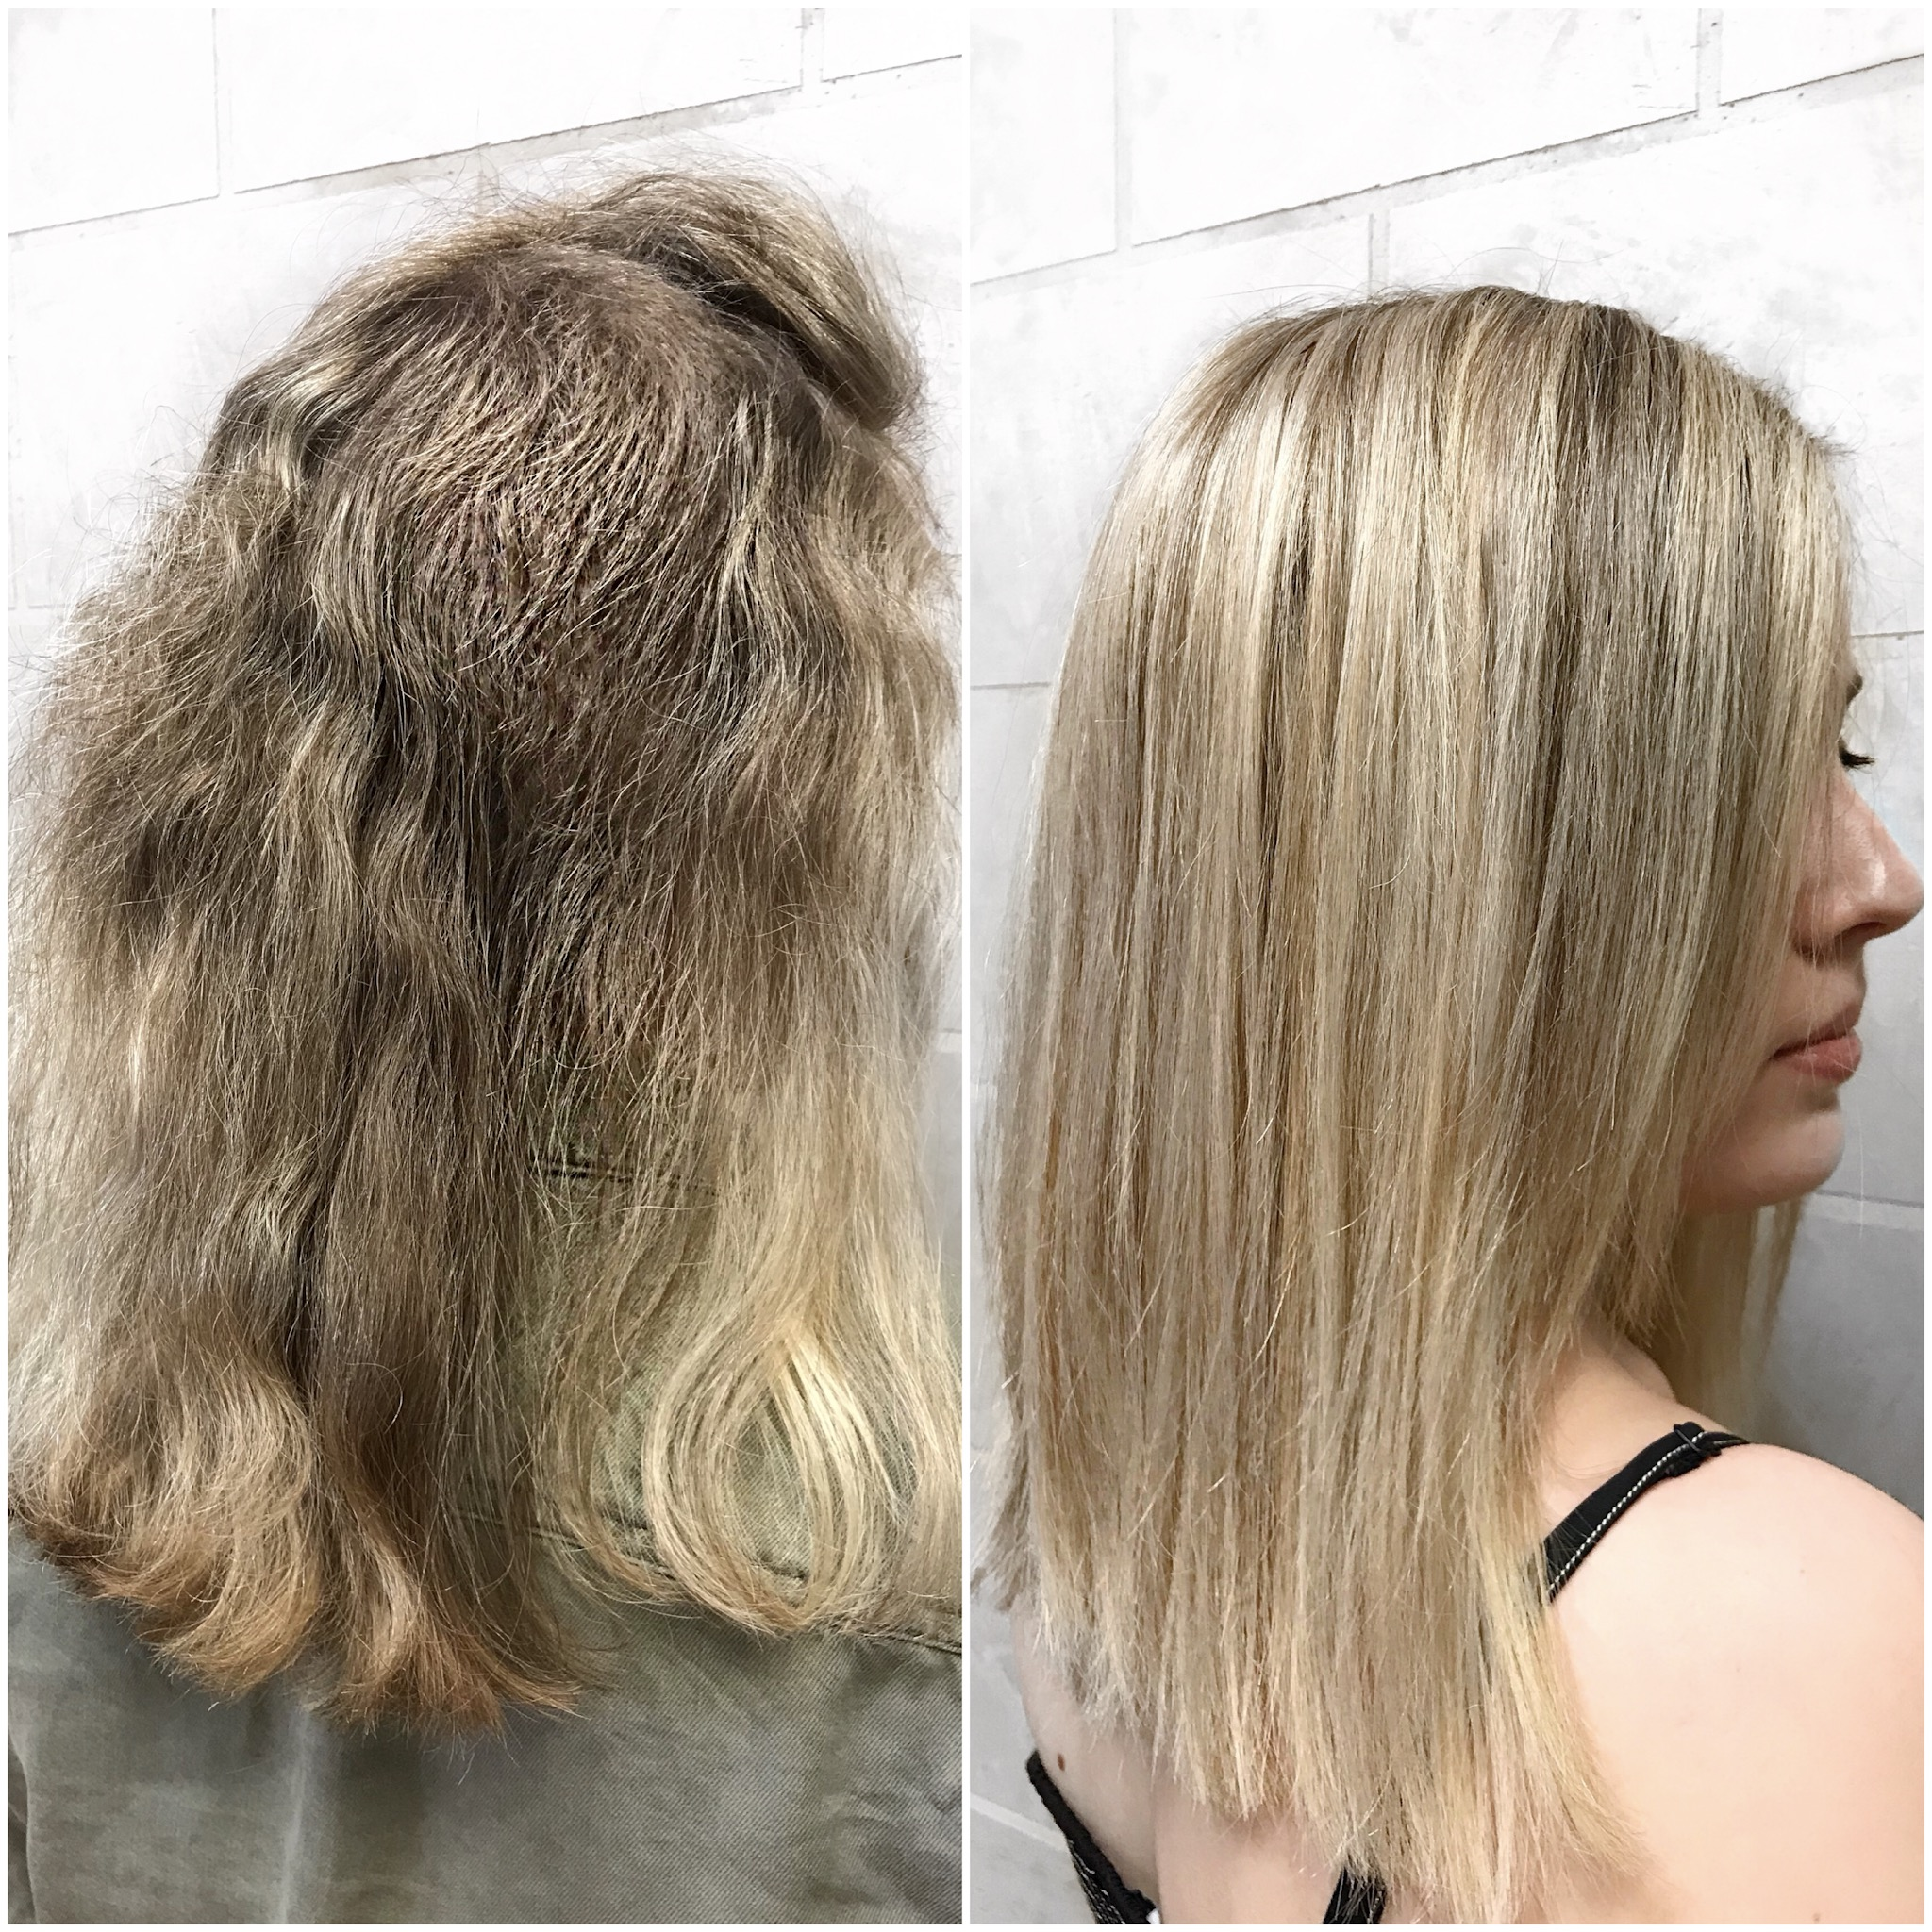 Trichotillomania hair stylist in charlotte, cancer wigs charlotte, hair extensions for cancer patients charlotte, micro bead hair extensions charlotte